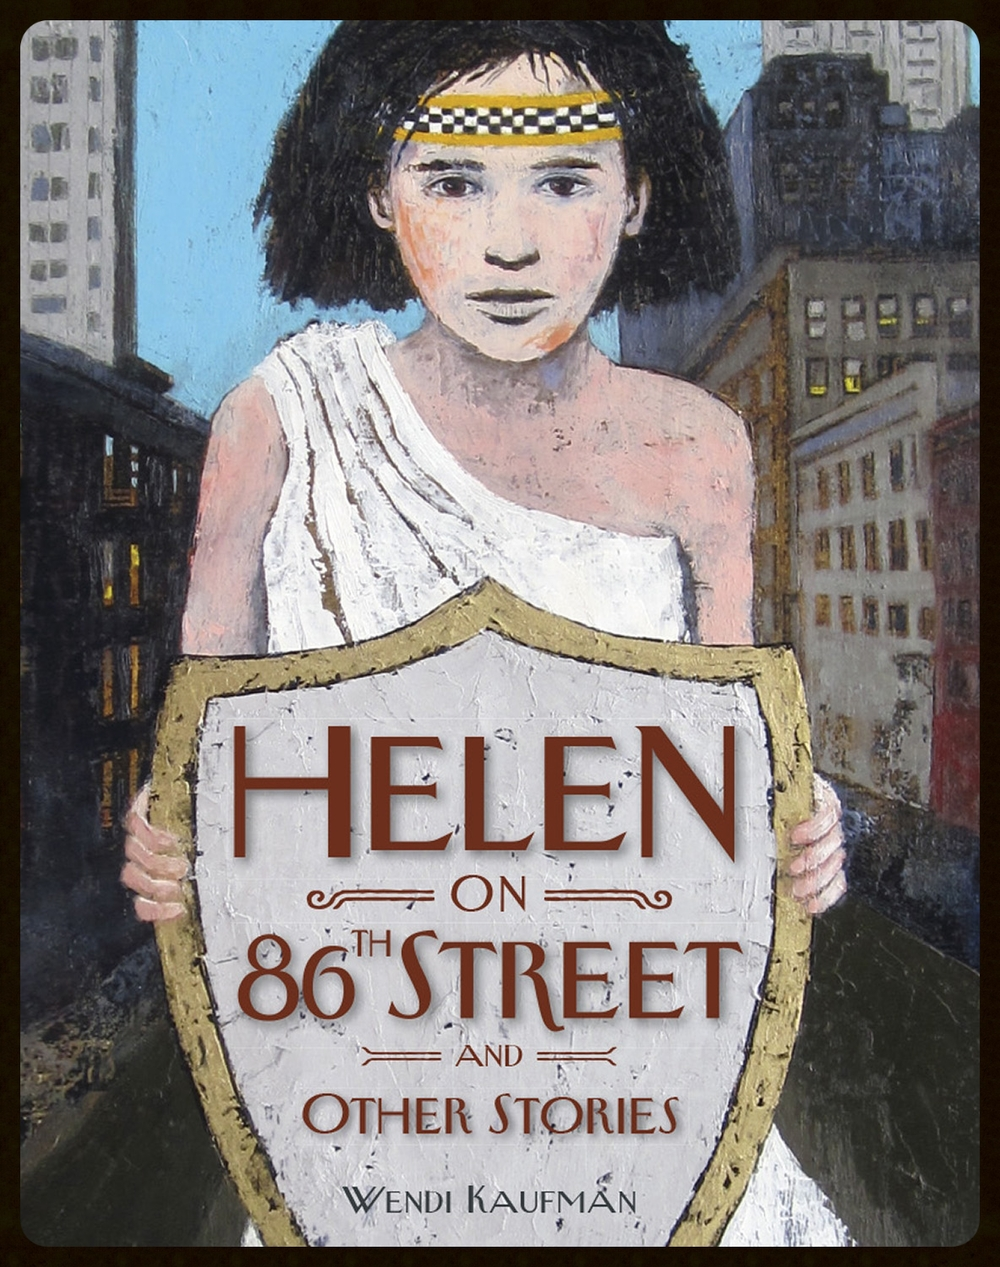 Helen on 86th Street and Other Stories , Wendi Kaufman (Stillhouse Press 2014)